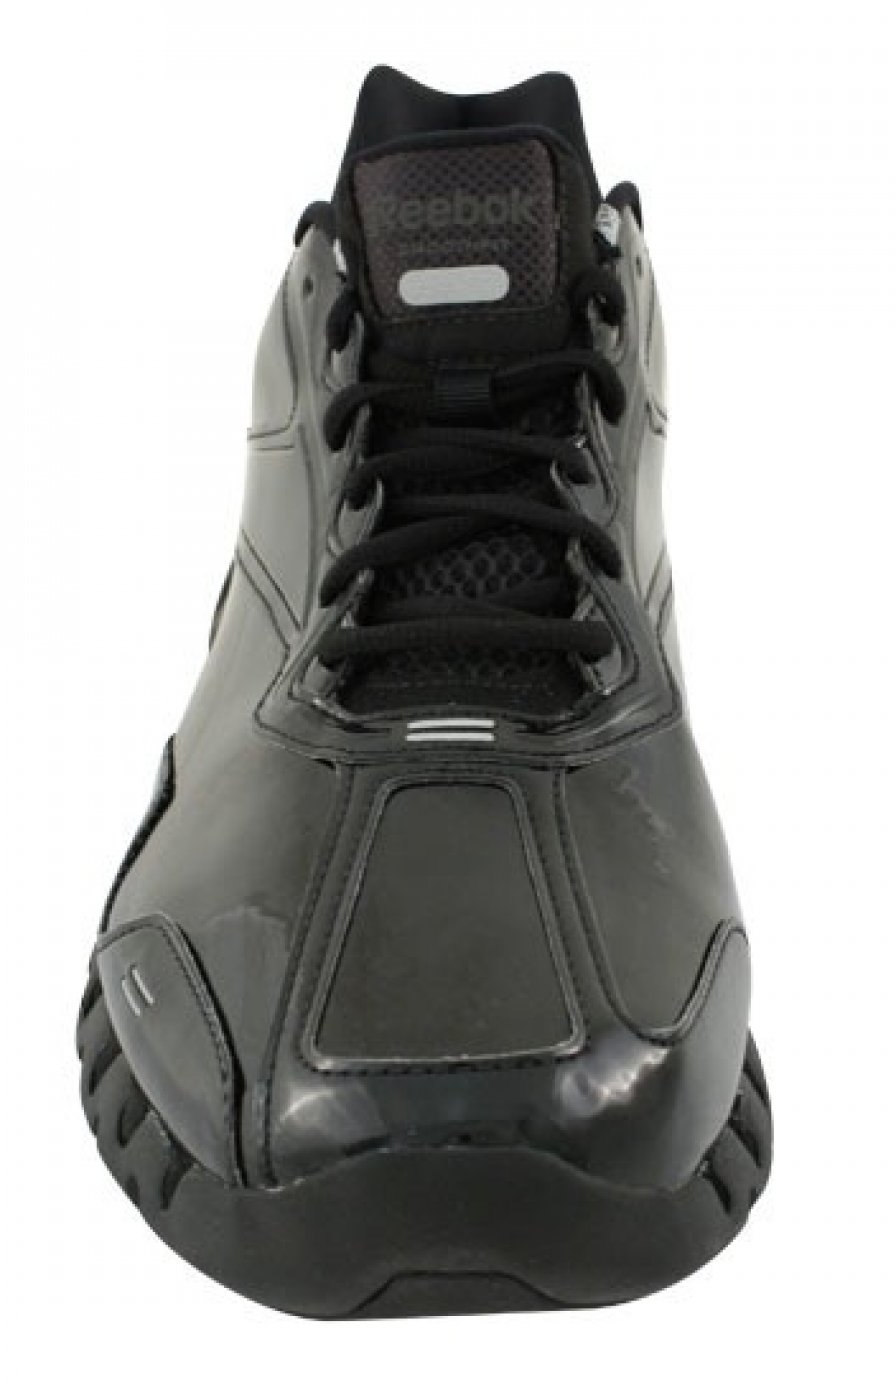 8ae7c16fdce Reebok Zig Energy Patent Leather Referee Shoes Ump Attire